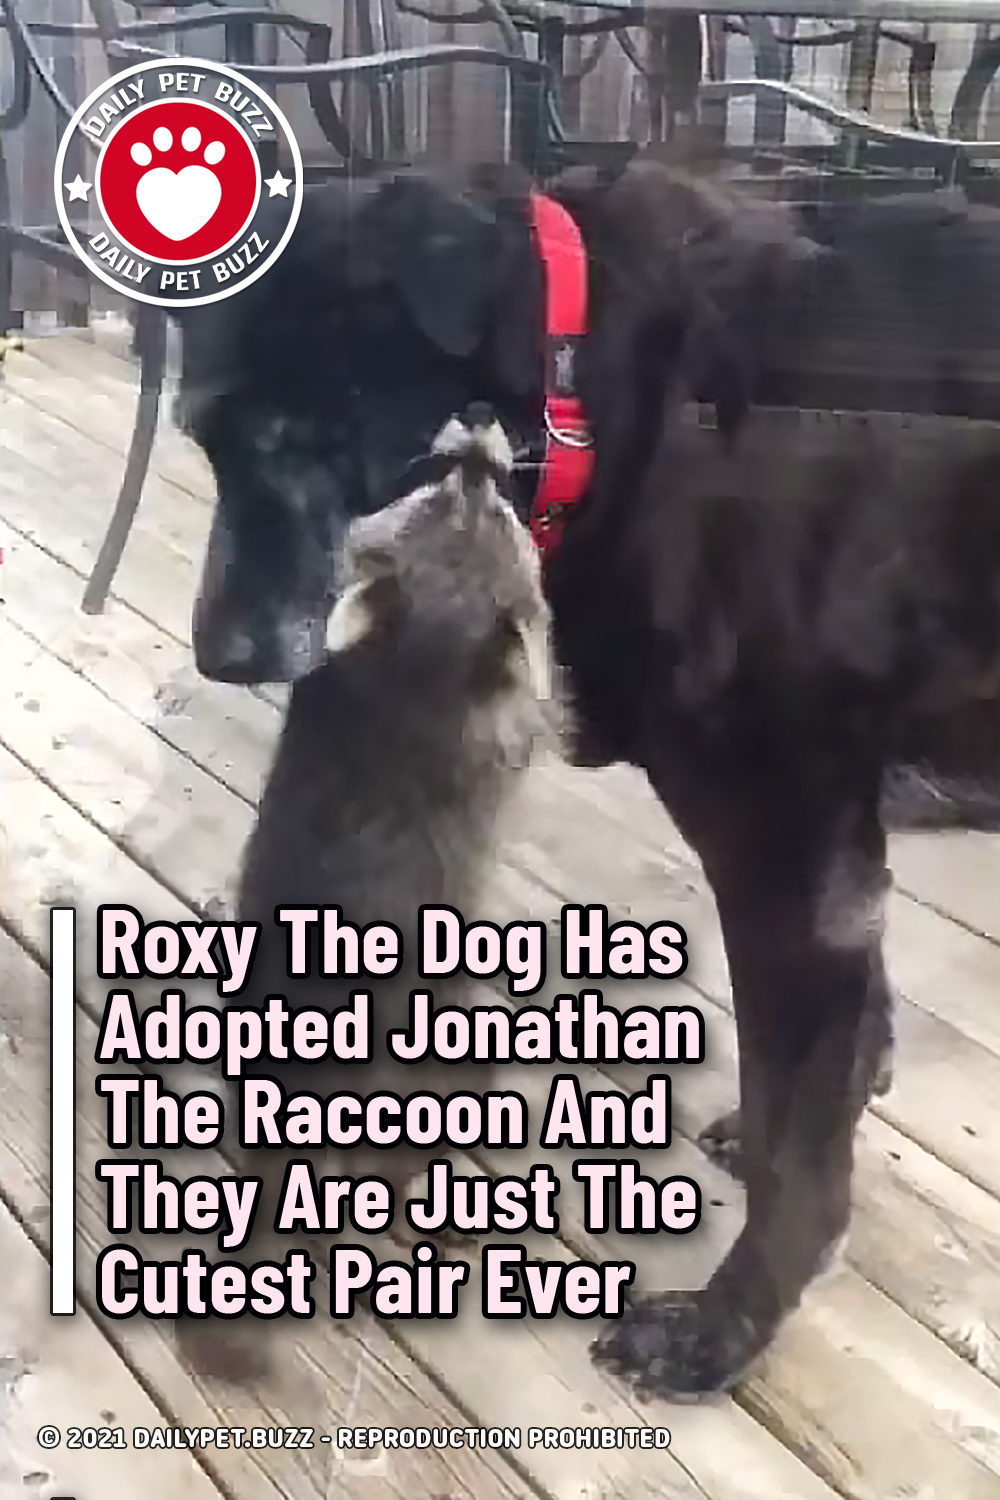 Roxy The Dog Has Adopted Jonathan The Raccoon And They Are Just The Cutest Pair Ever